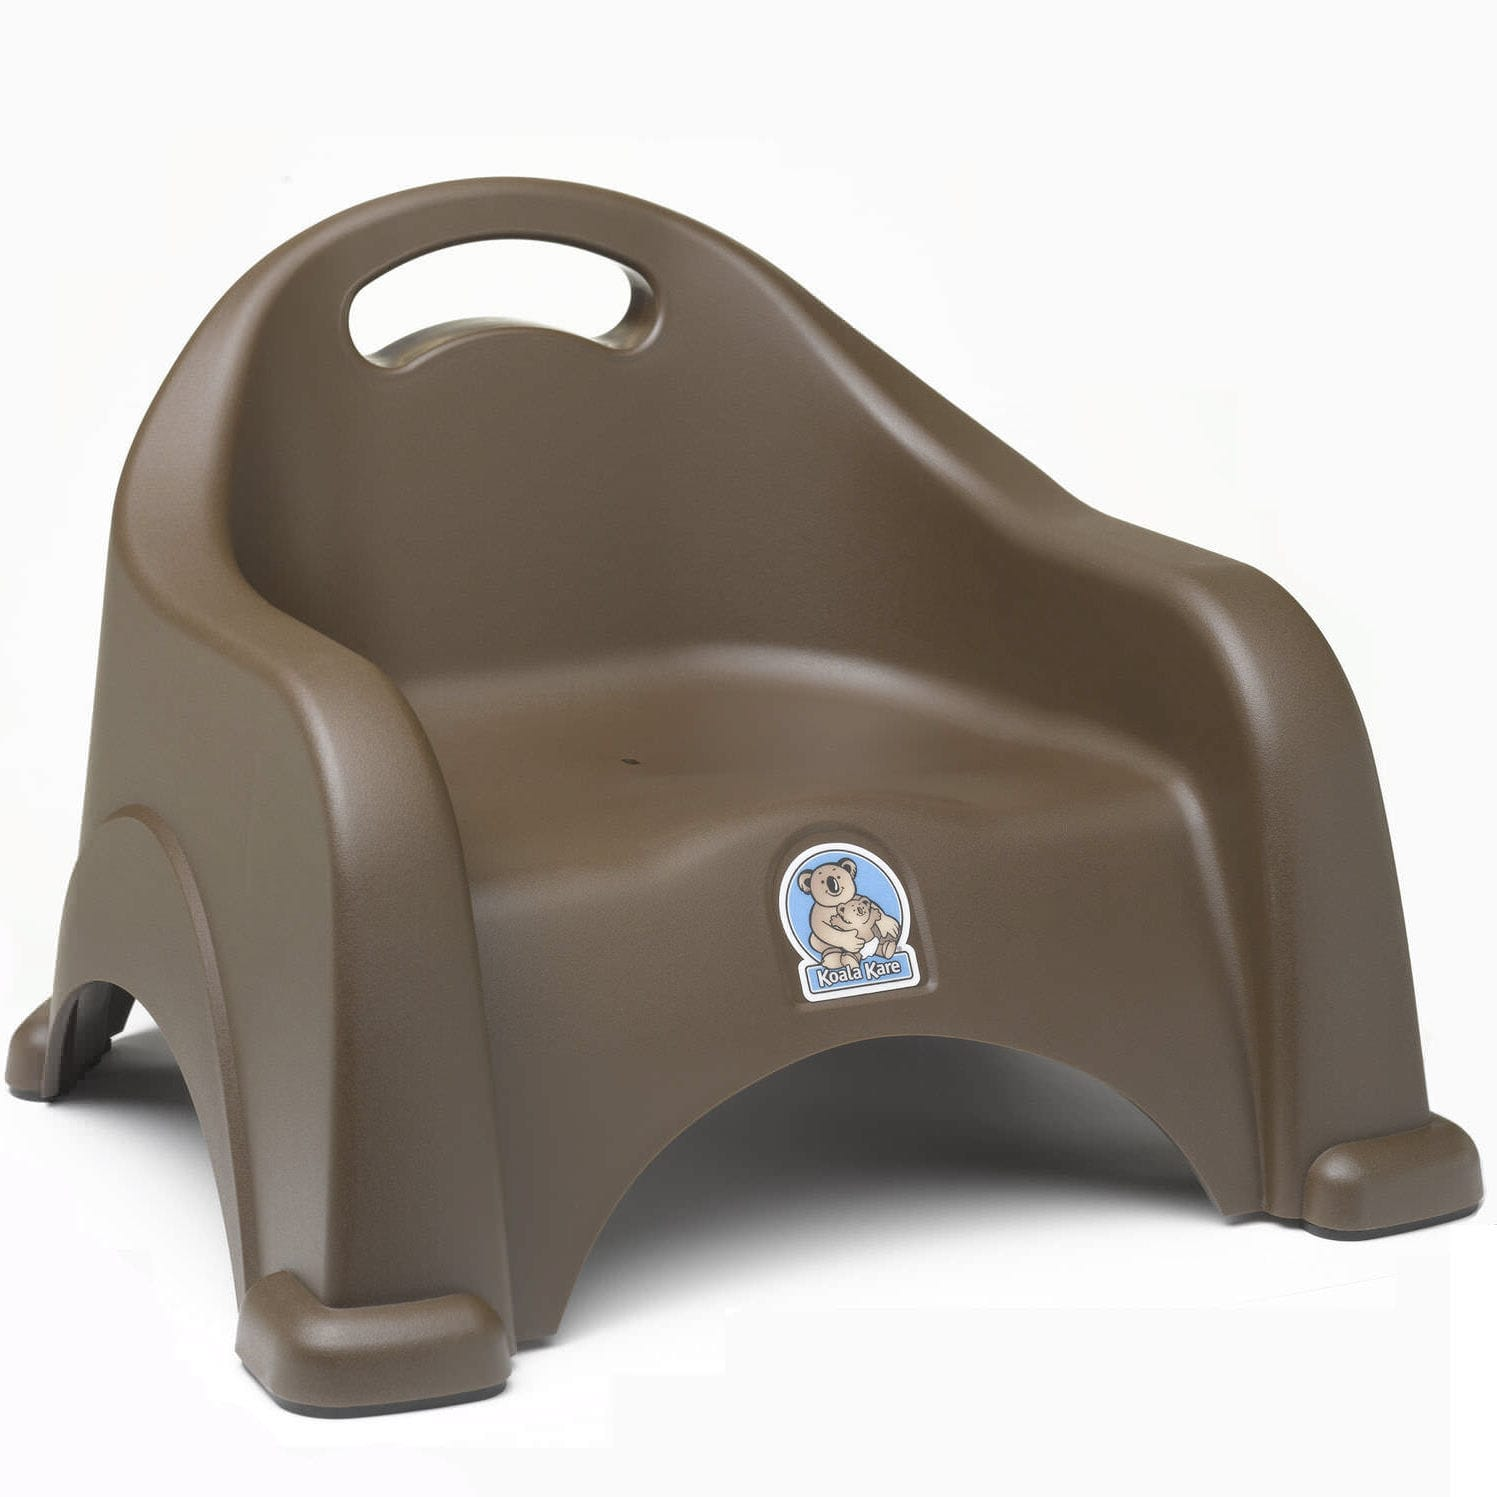 mercial booster seat KB327 Koala Kare Products